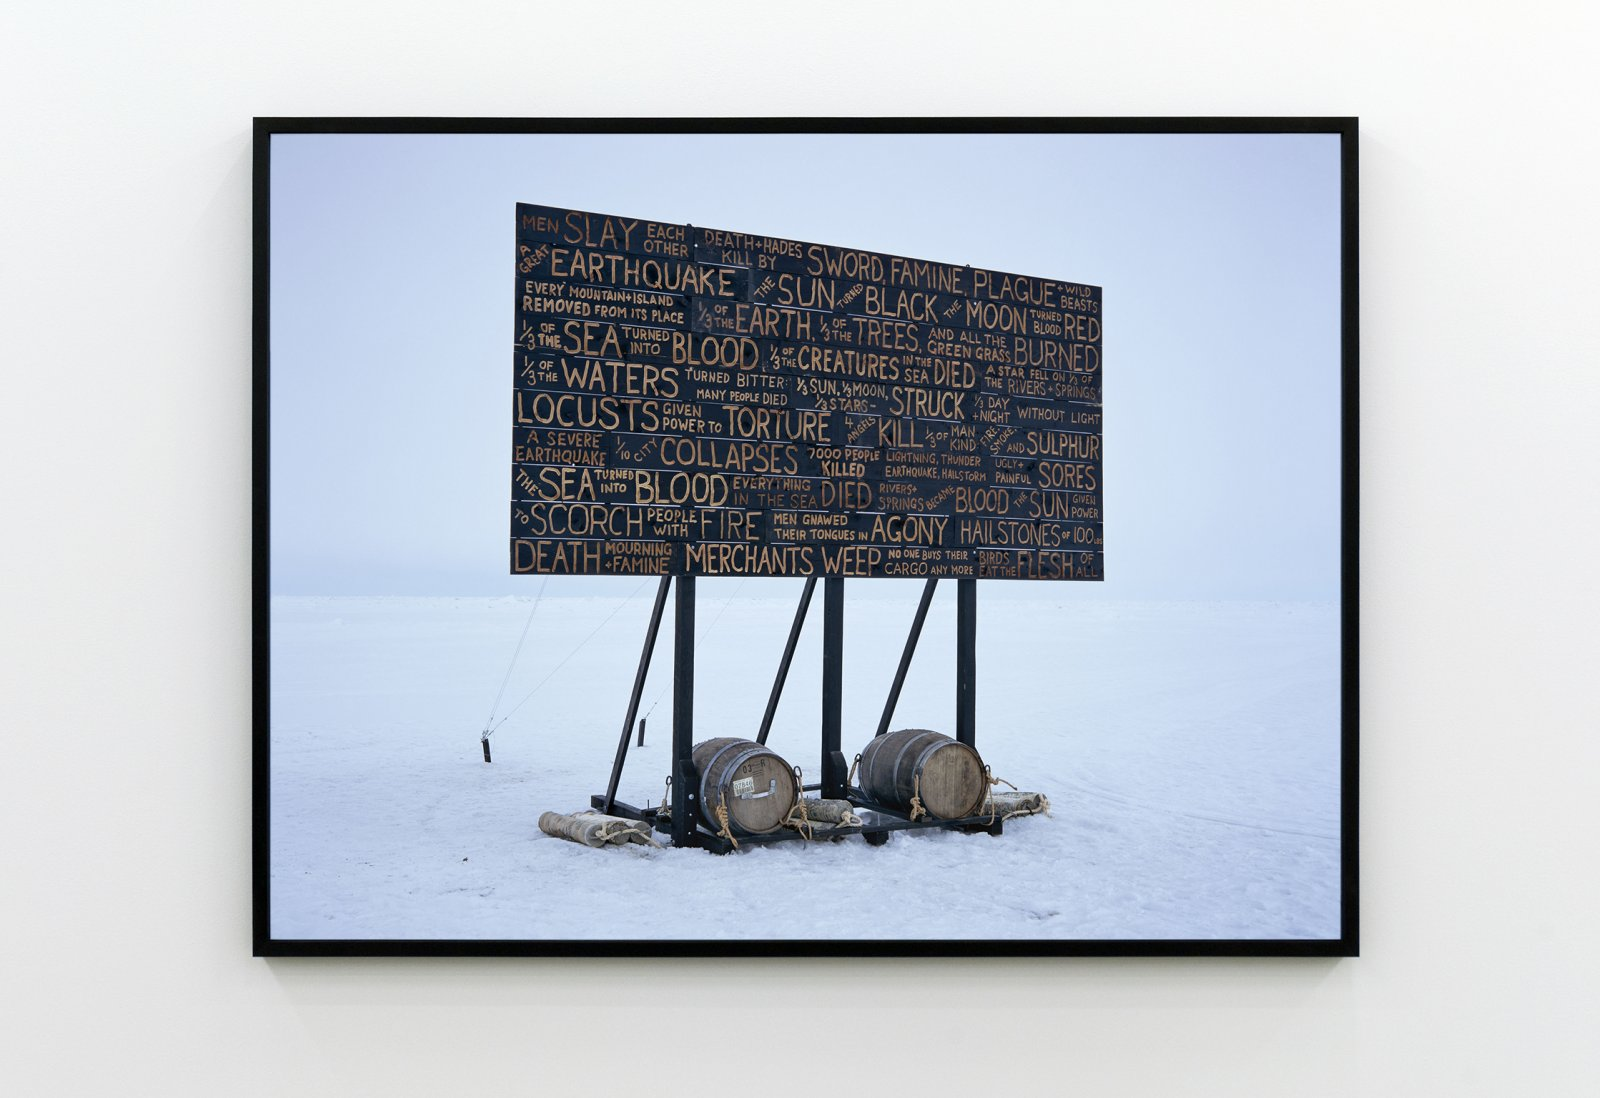 Kevin Schmidt, A Sign in the Northwest Passage (Museum Photograph)​, 2010, c-print, cedar frame, 64 x 49 in. (163 x 124 cm) by Kevin Schmidt